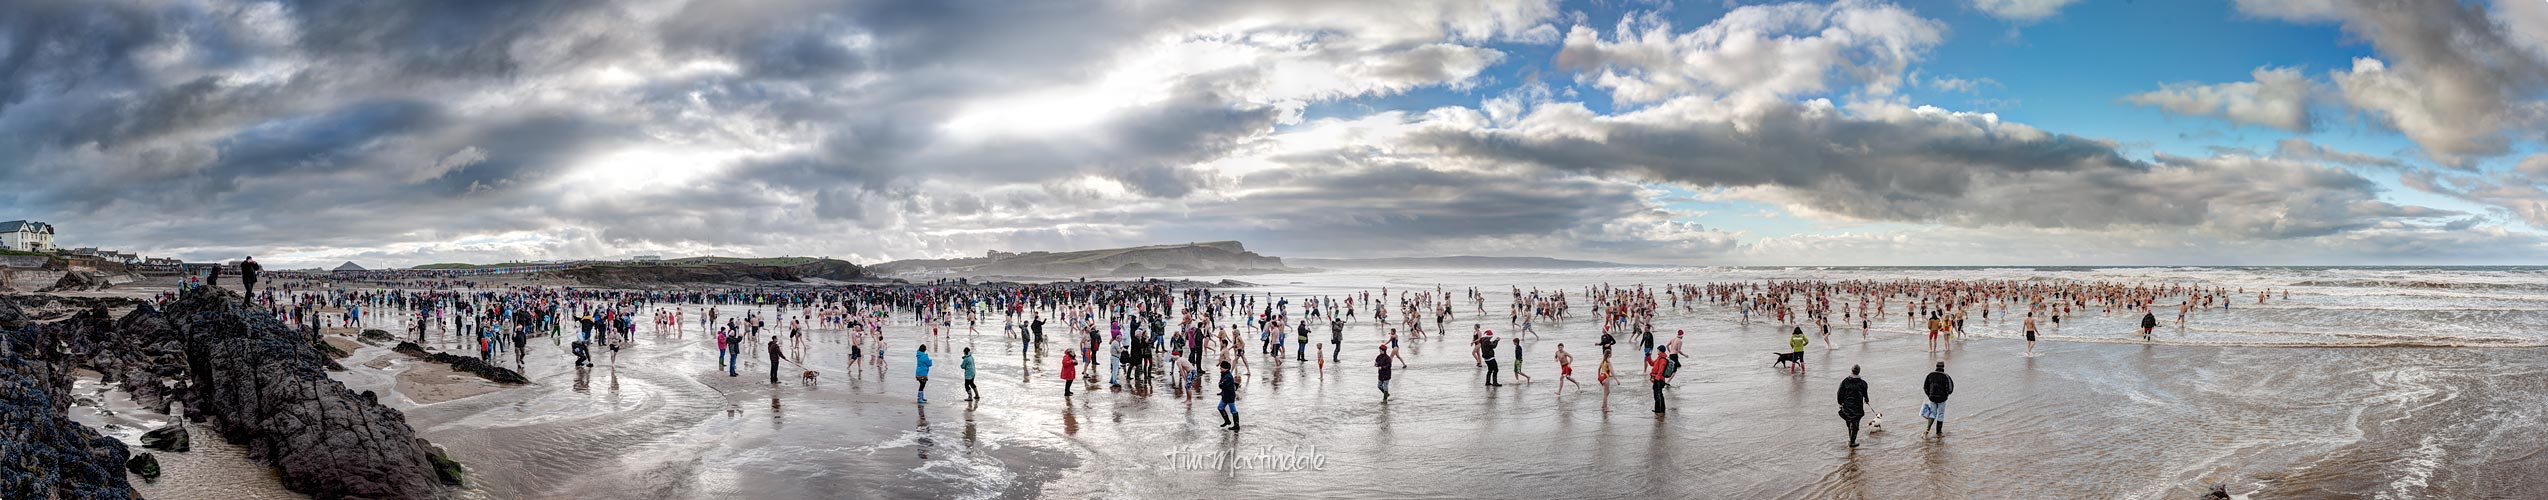 The Christmas Day Swim at Bude, Cornwall